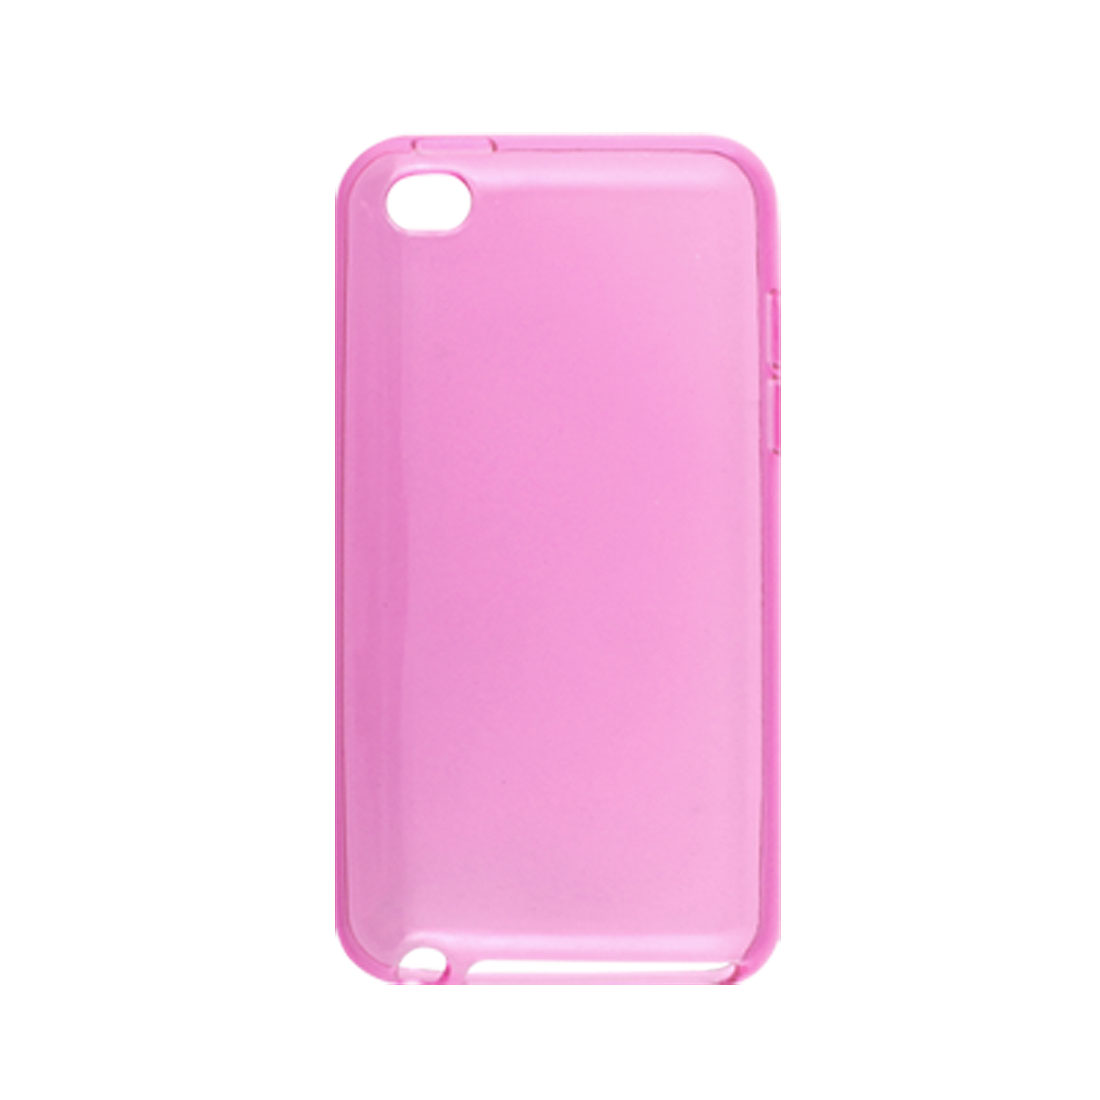 Protective Amaranth Back Phone Case Clear for iPod Touch 4 - image 1 of 1